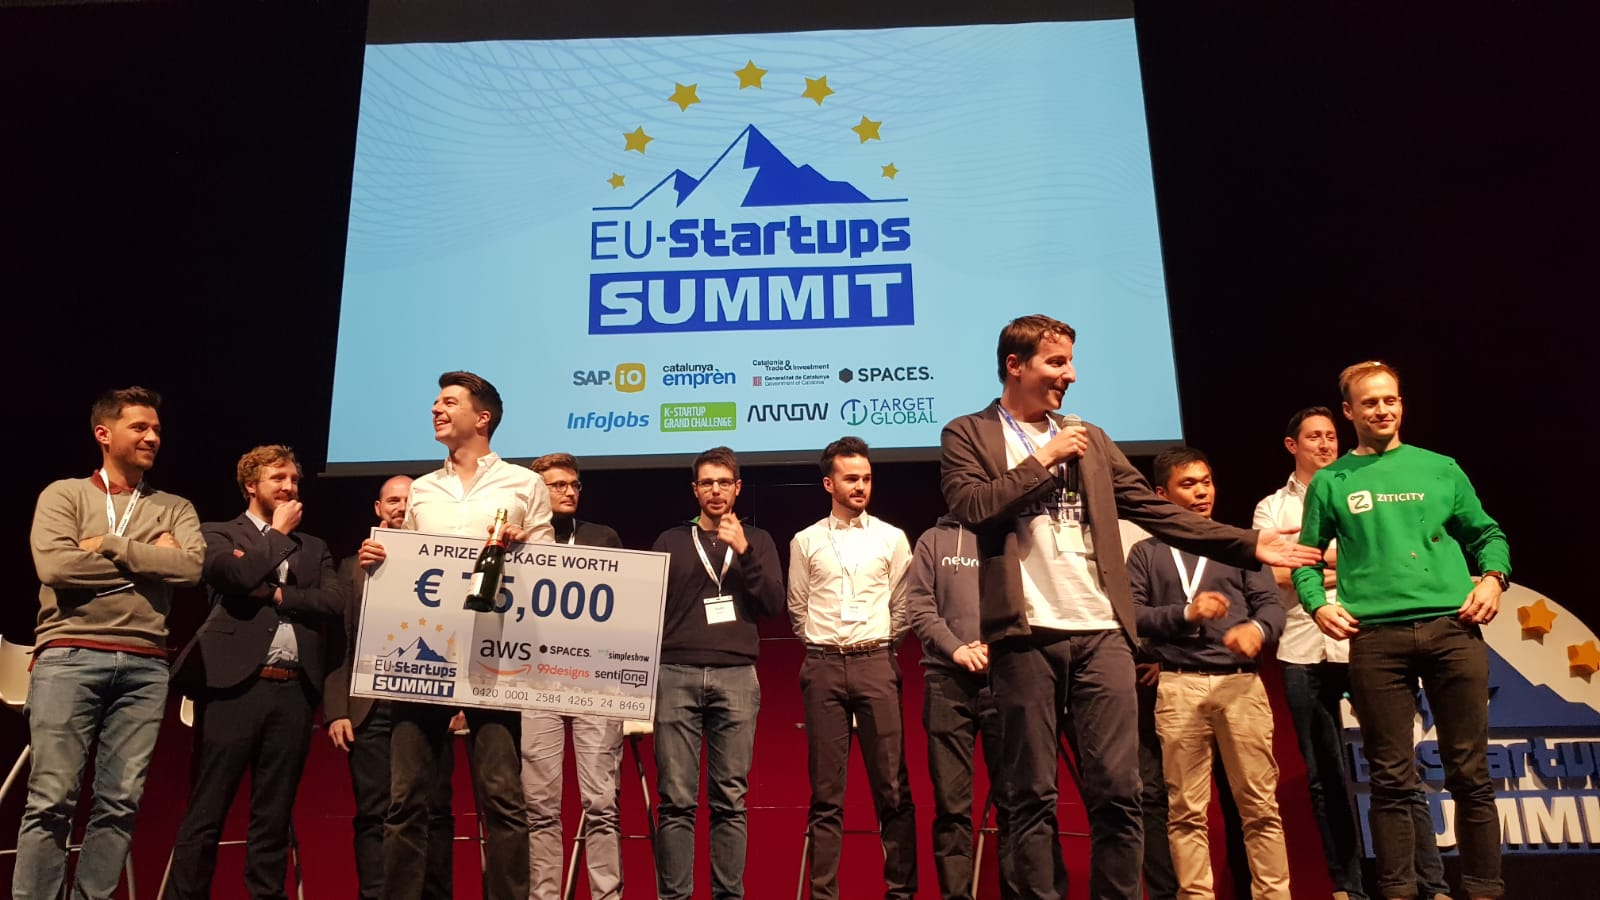 Barcelona's EU-Startups Summit 2019: the arena, the heroes and the city